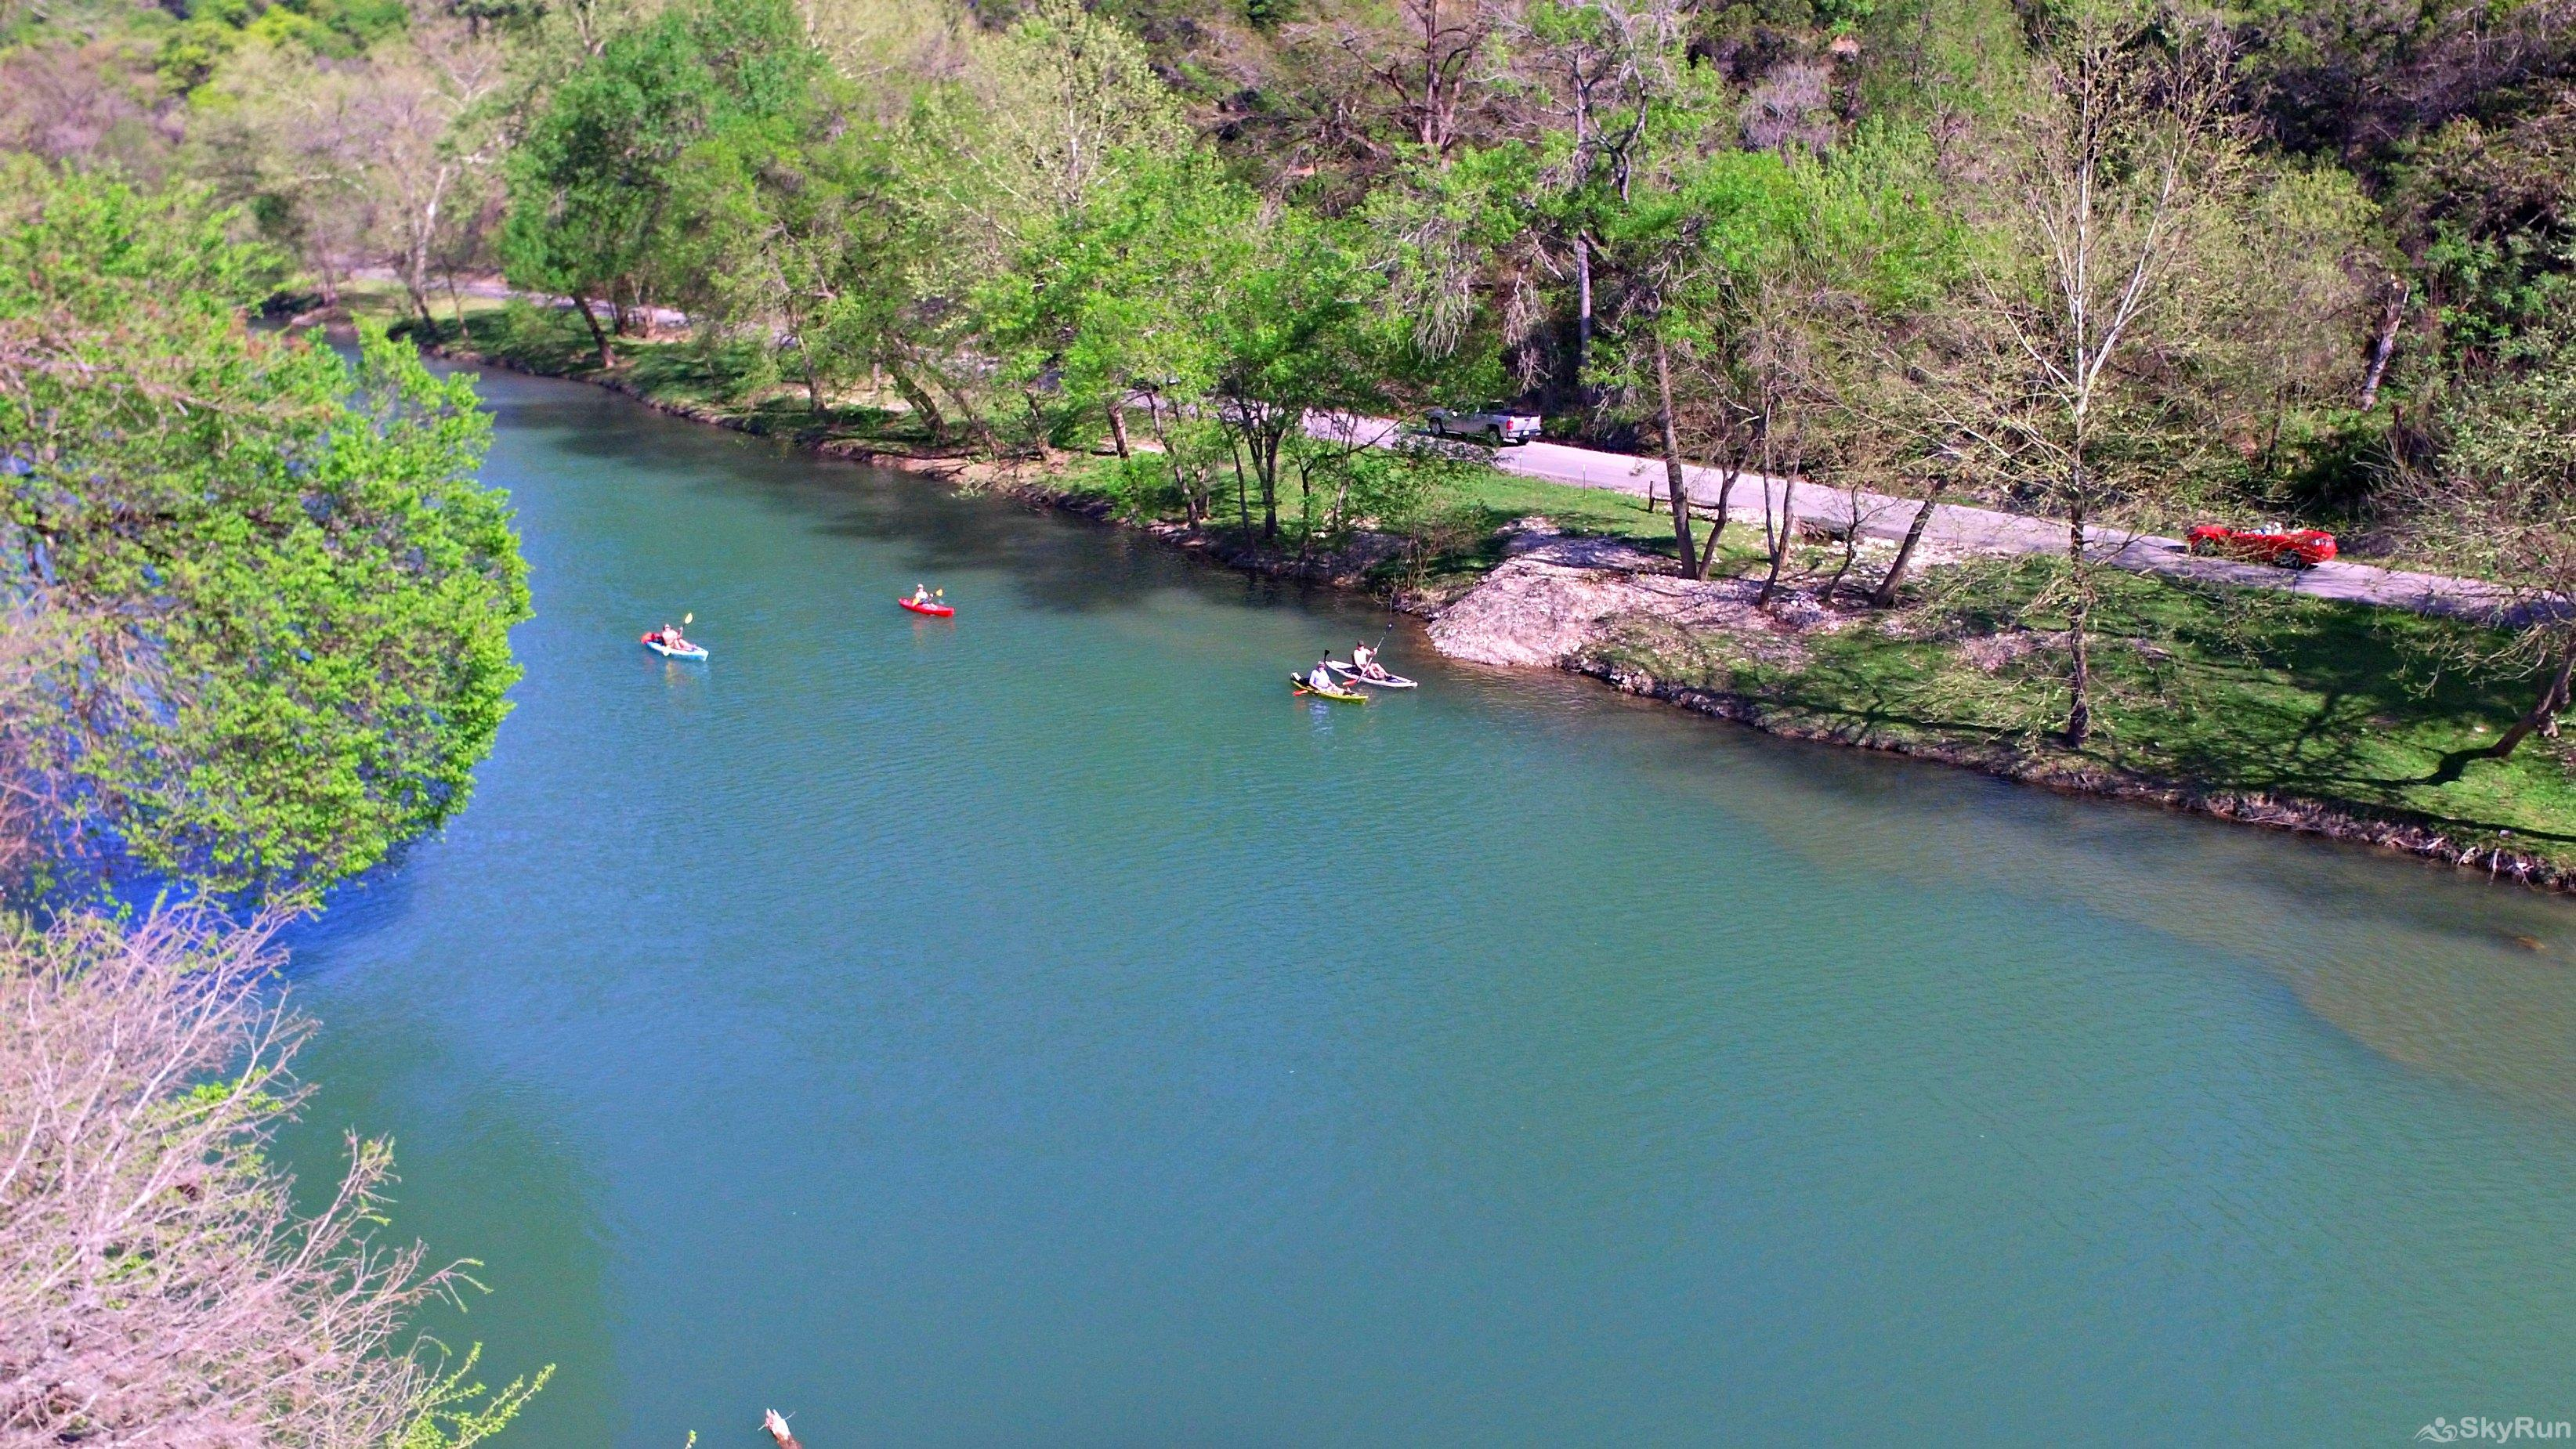 TEXAS ROSE LODGE Experience the cool, refreshing waters of the Guadalupe River